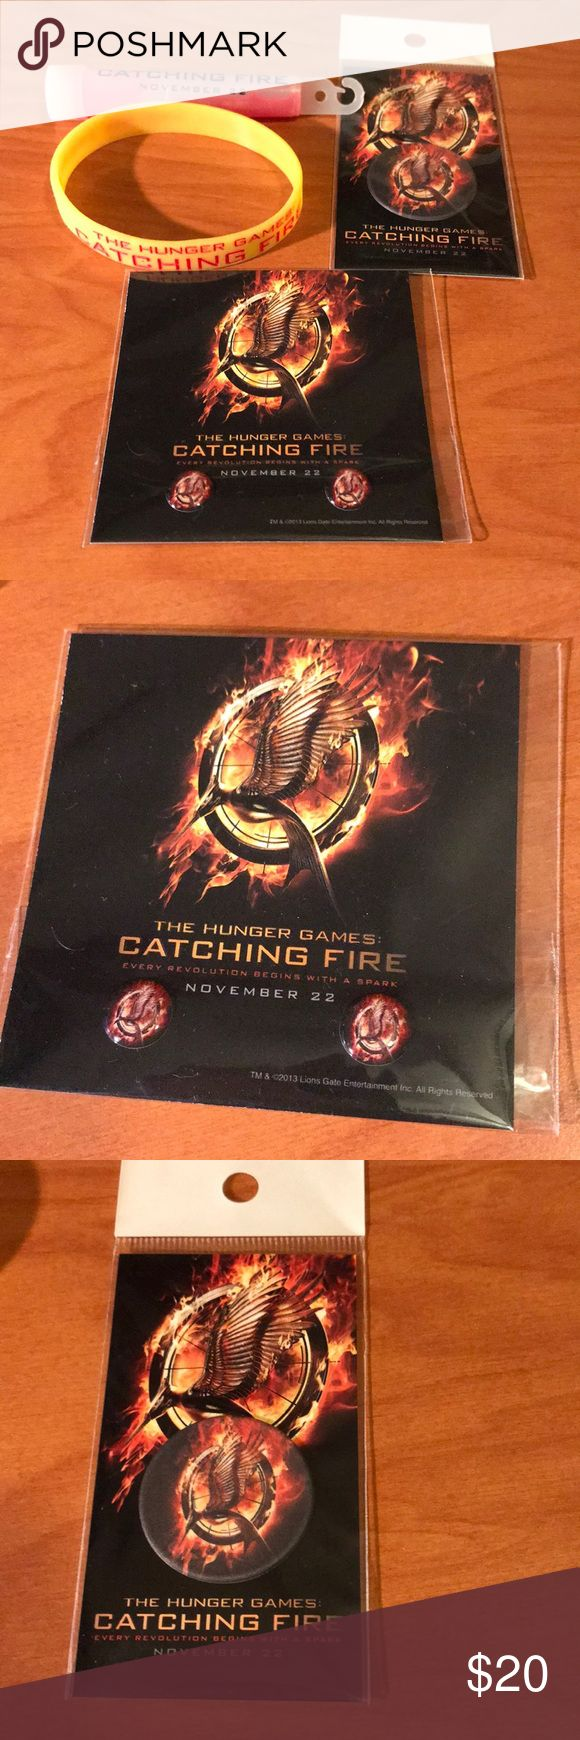 The Hunger Games catching fire fan camp set of 4 All items are brand new, you will receive 1 glow stick (hasn't been broken yet) 1 bracelet, home button stickers, and screen cleaner. This post is a FIRM price. Other